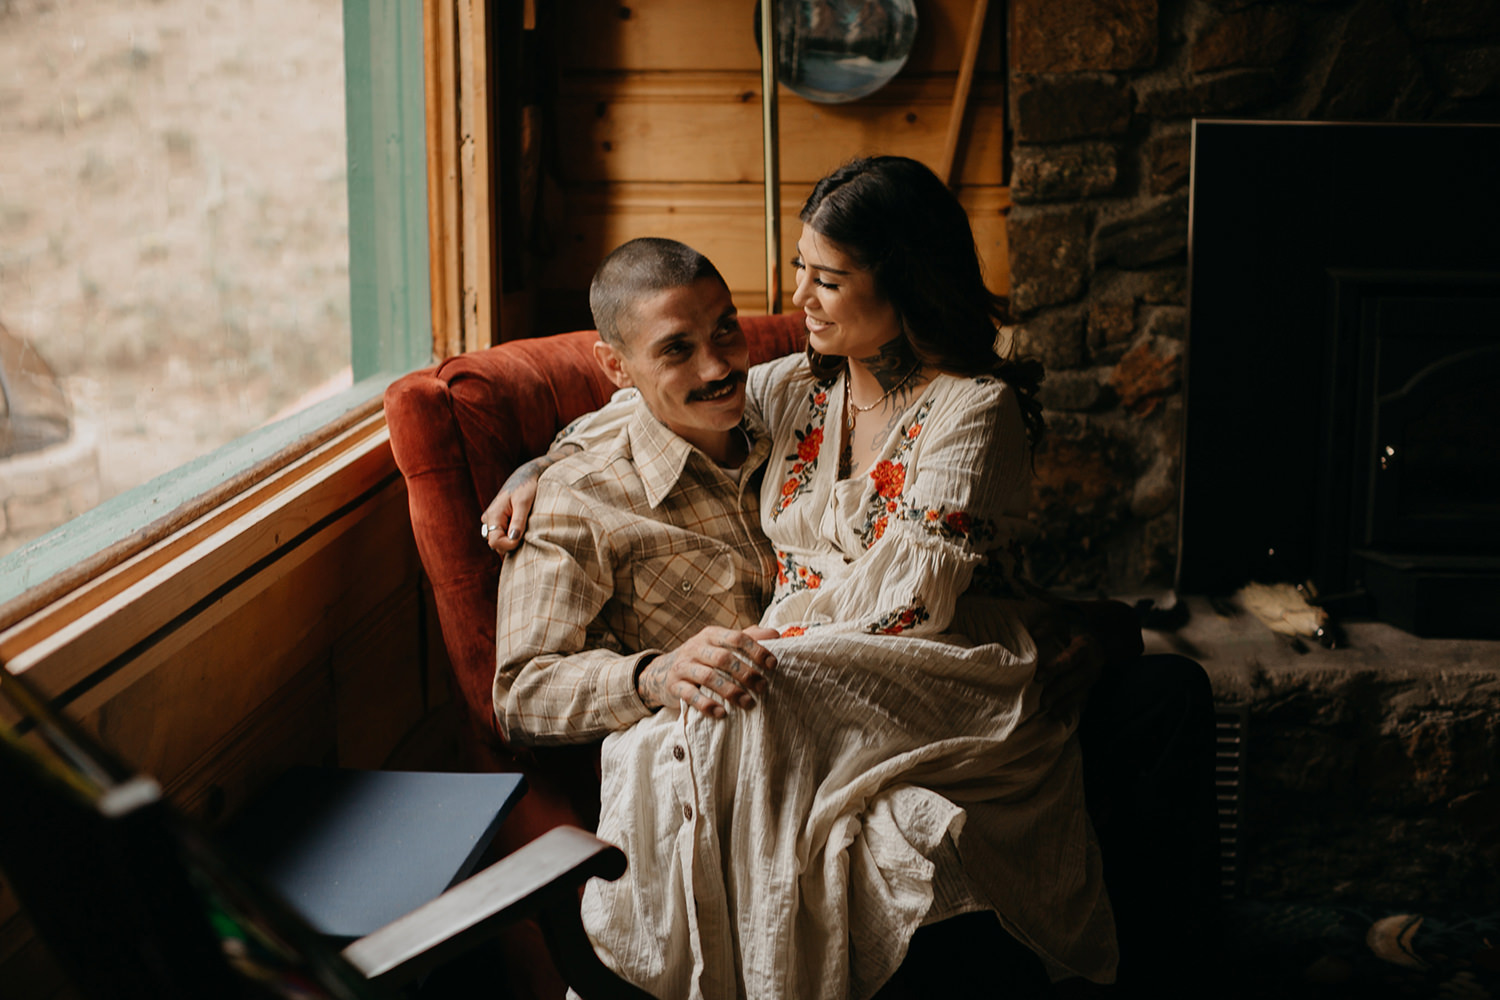 Bailey Colorado Denver Wedding Engagement Photographer Liz Osban Cheyenne Wyoming Mountain Elopement Boho bohemian vintage film tattoo non traditional tattooed rock and roll 42.jpg